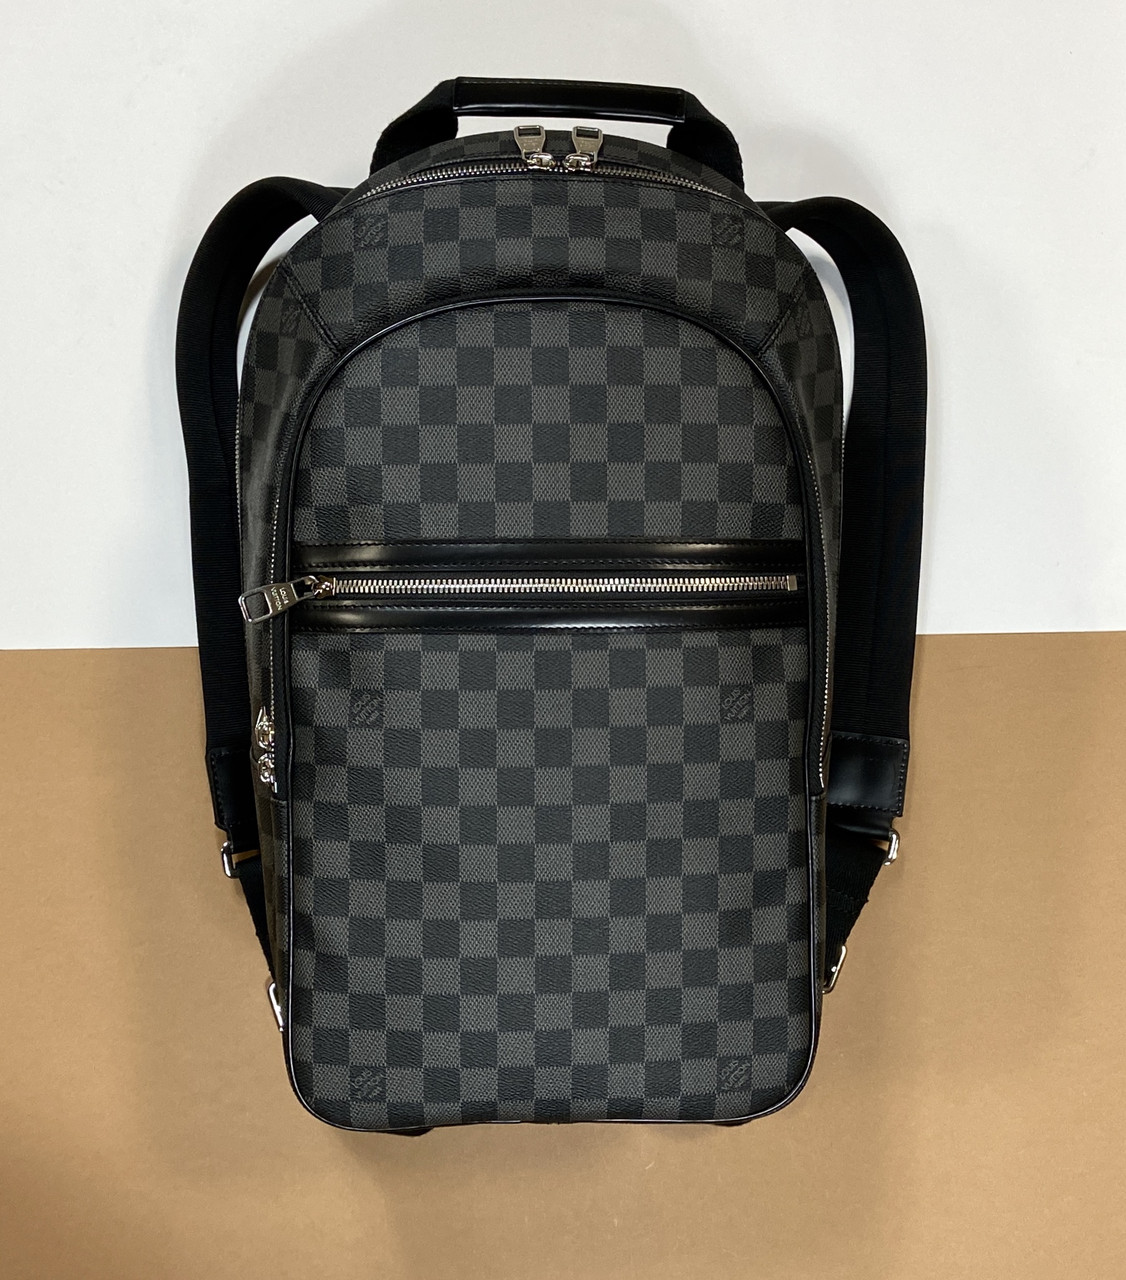 Рюкзак Louis Vuitton Michael (Луи Виттон) арт. 14-24